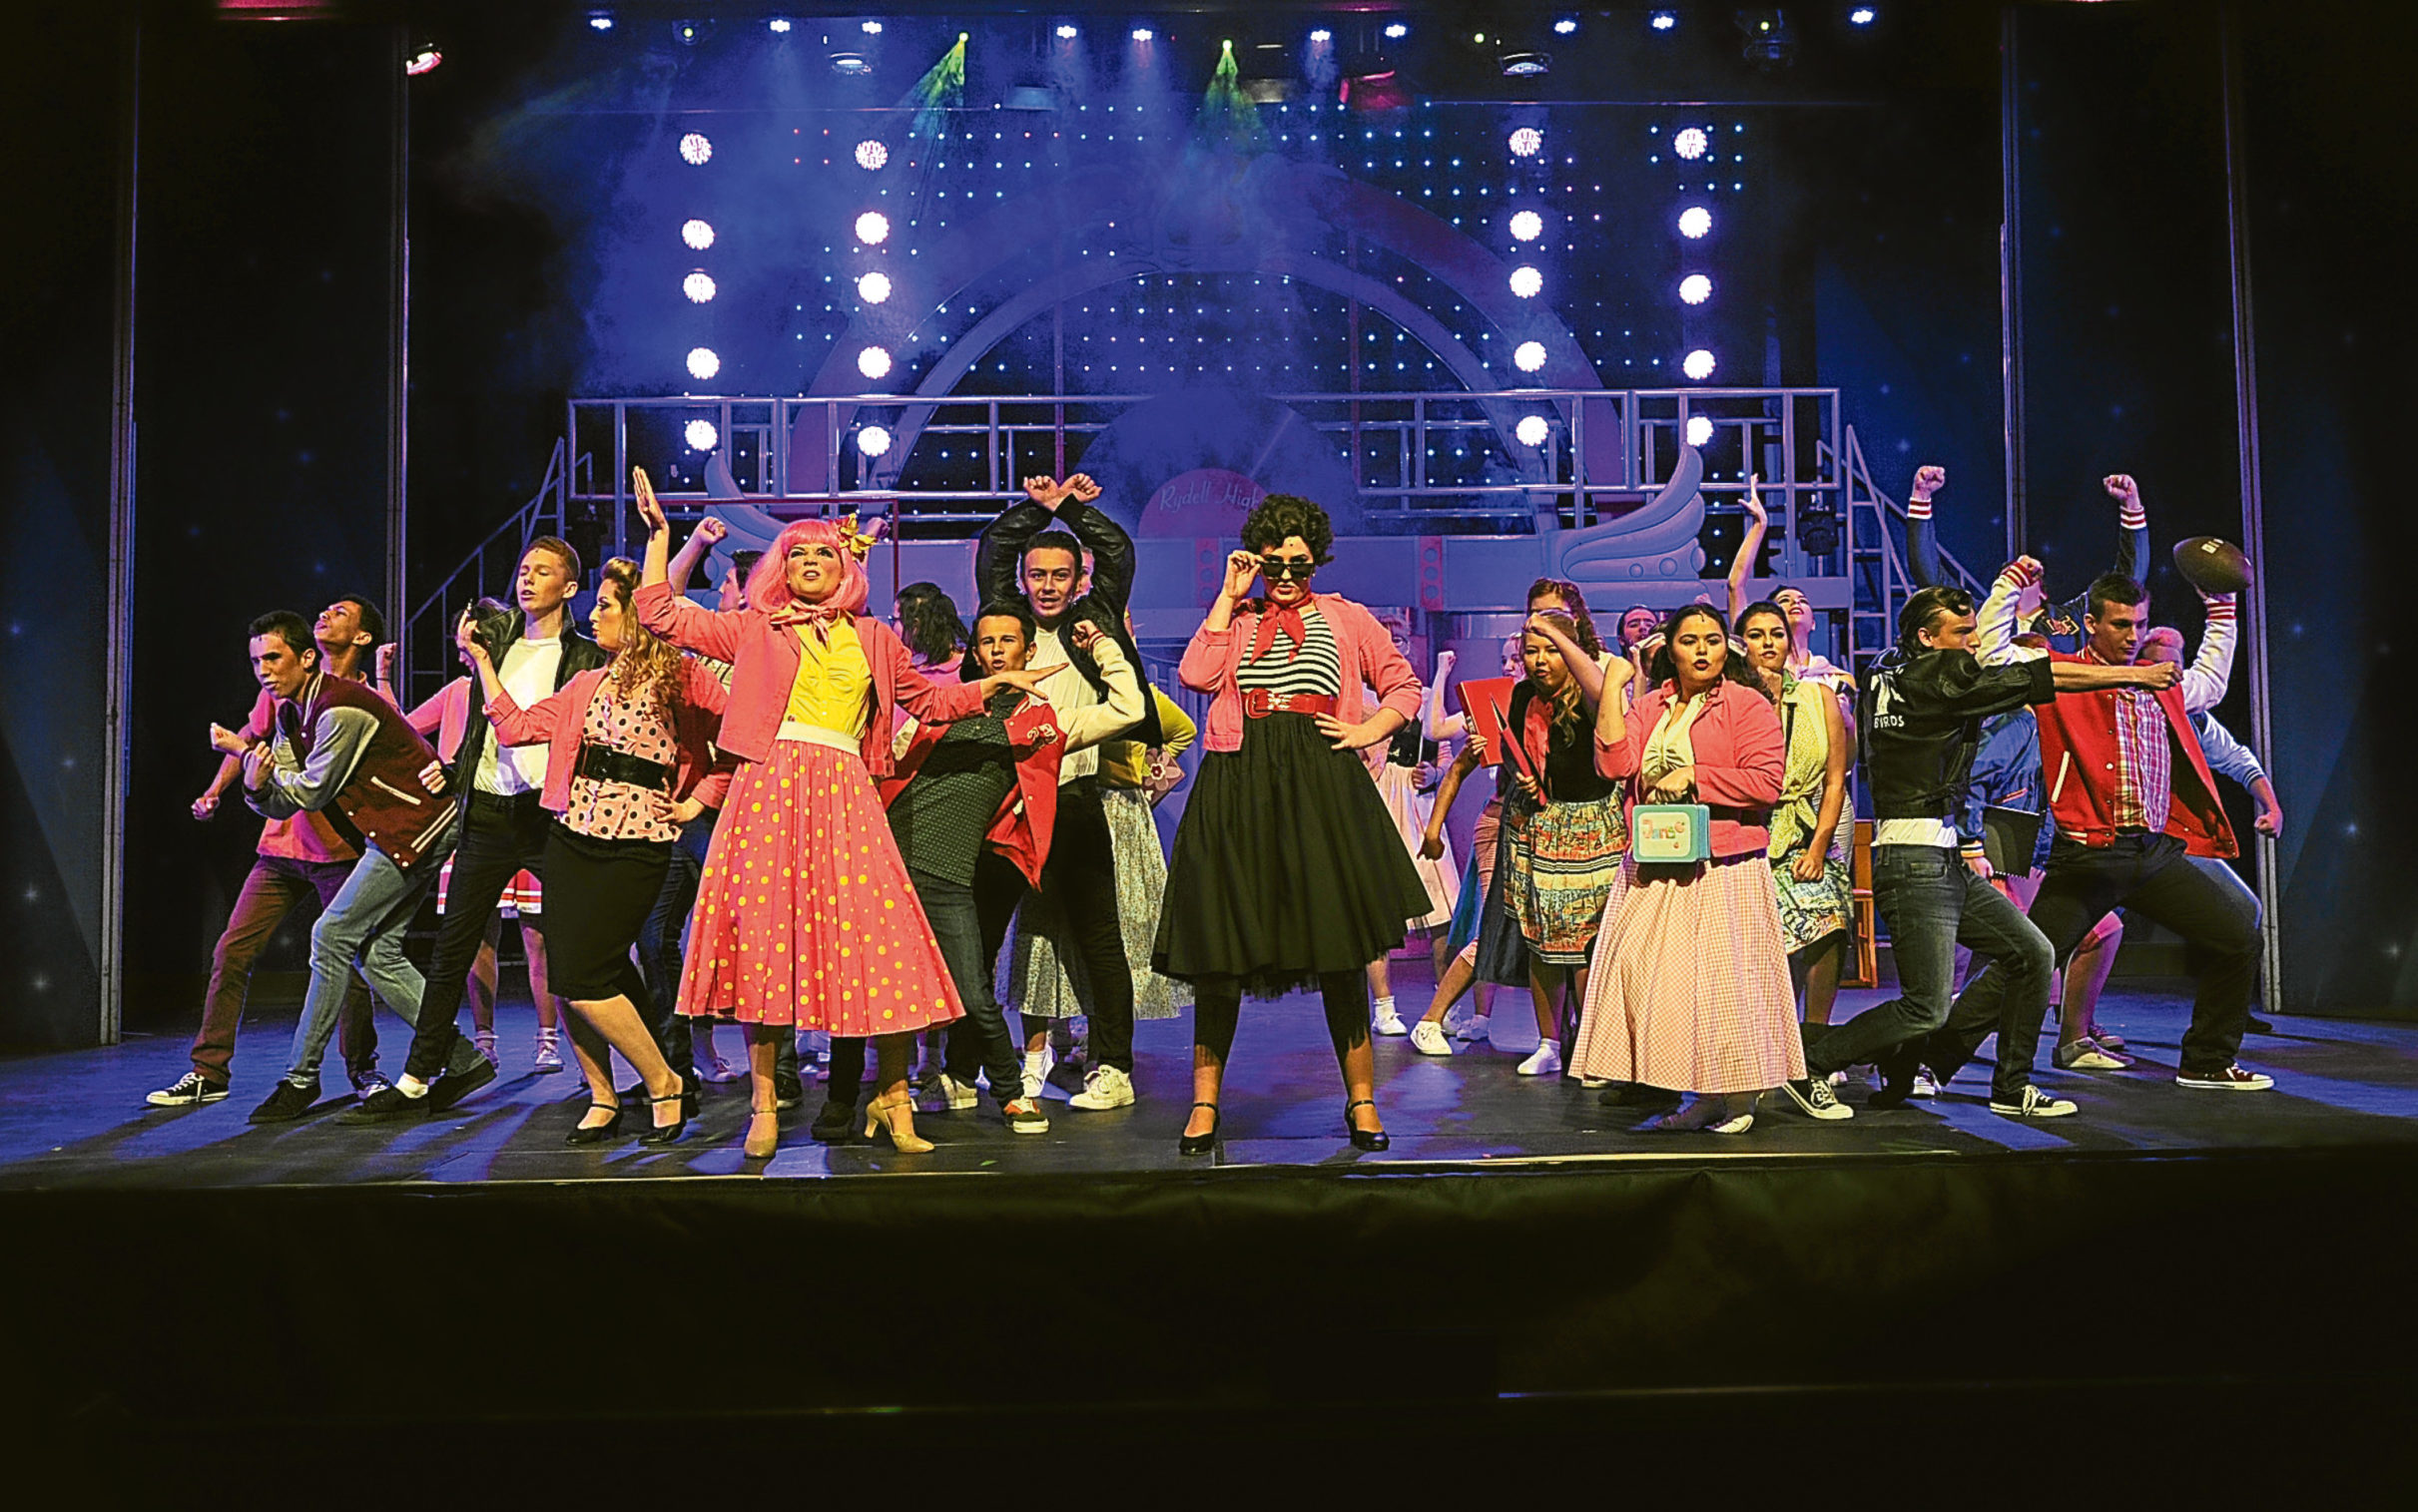 Dundee Schools Music Theatre's production of Grease in 2015.